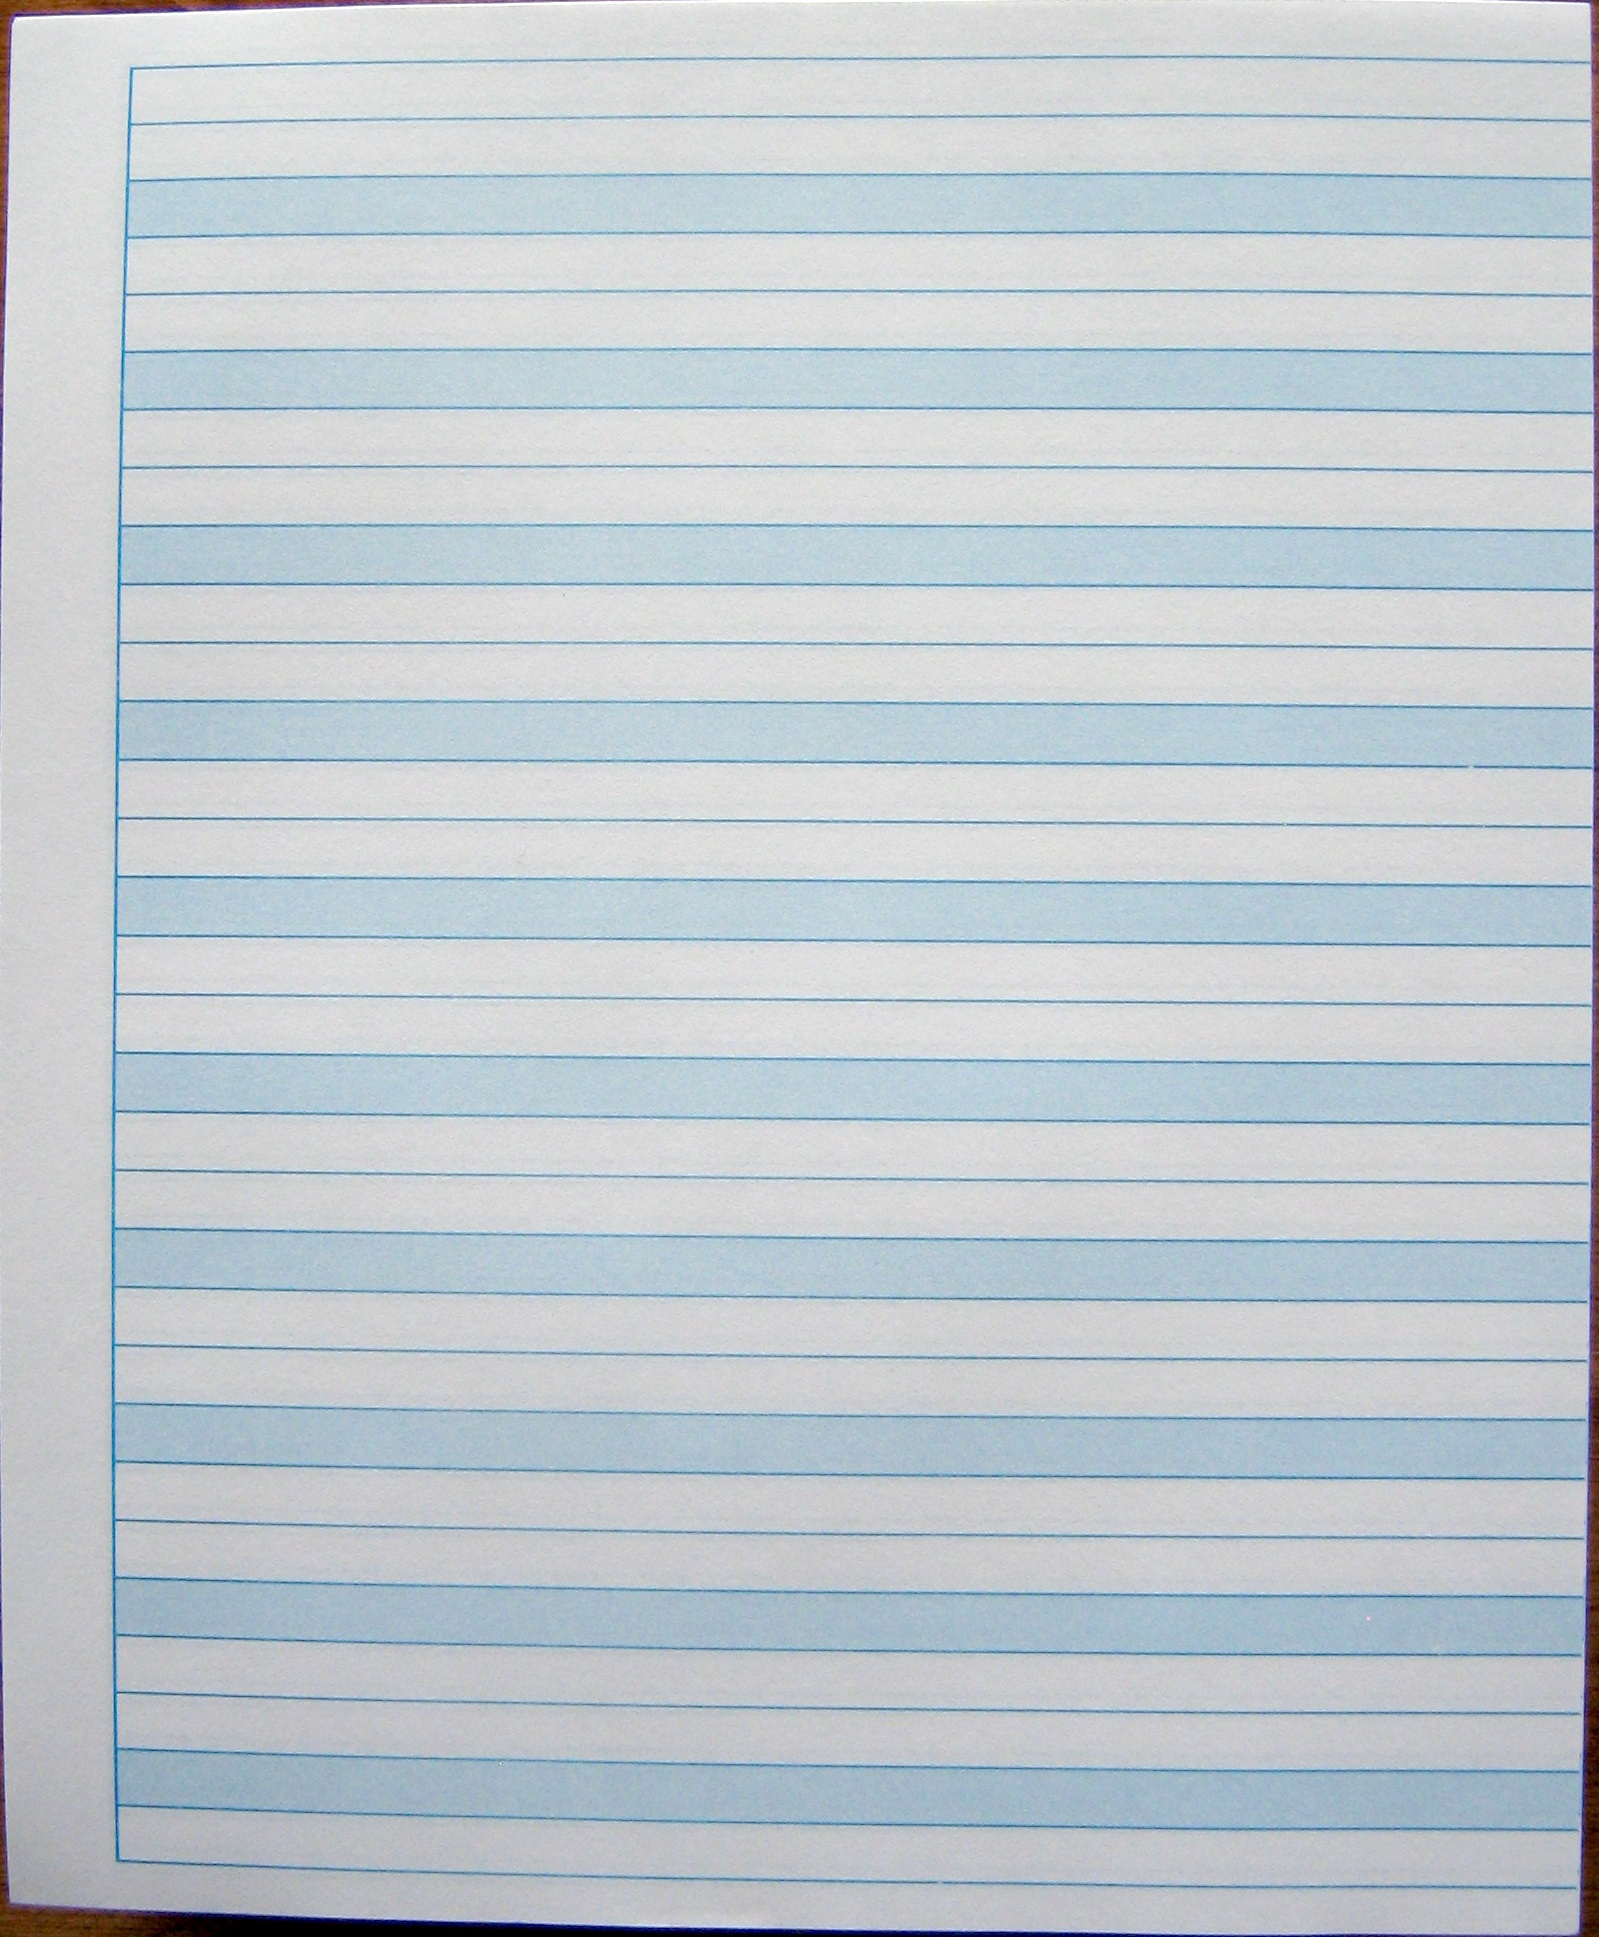 56 blue shaded writing paper - sheet size 8 5 u0026quot  x 7 u0026quot